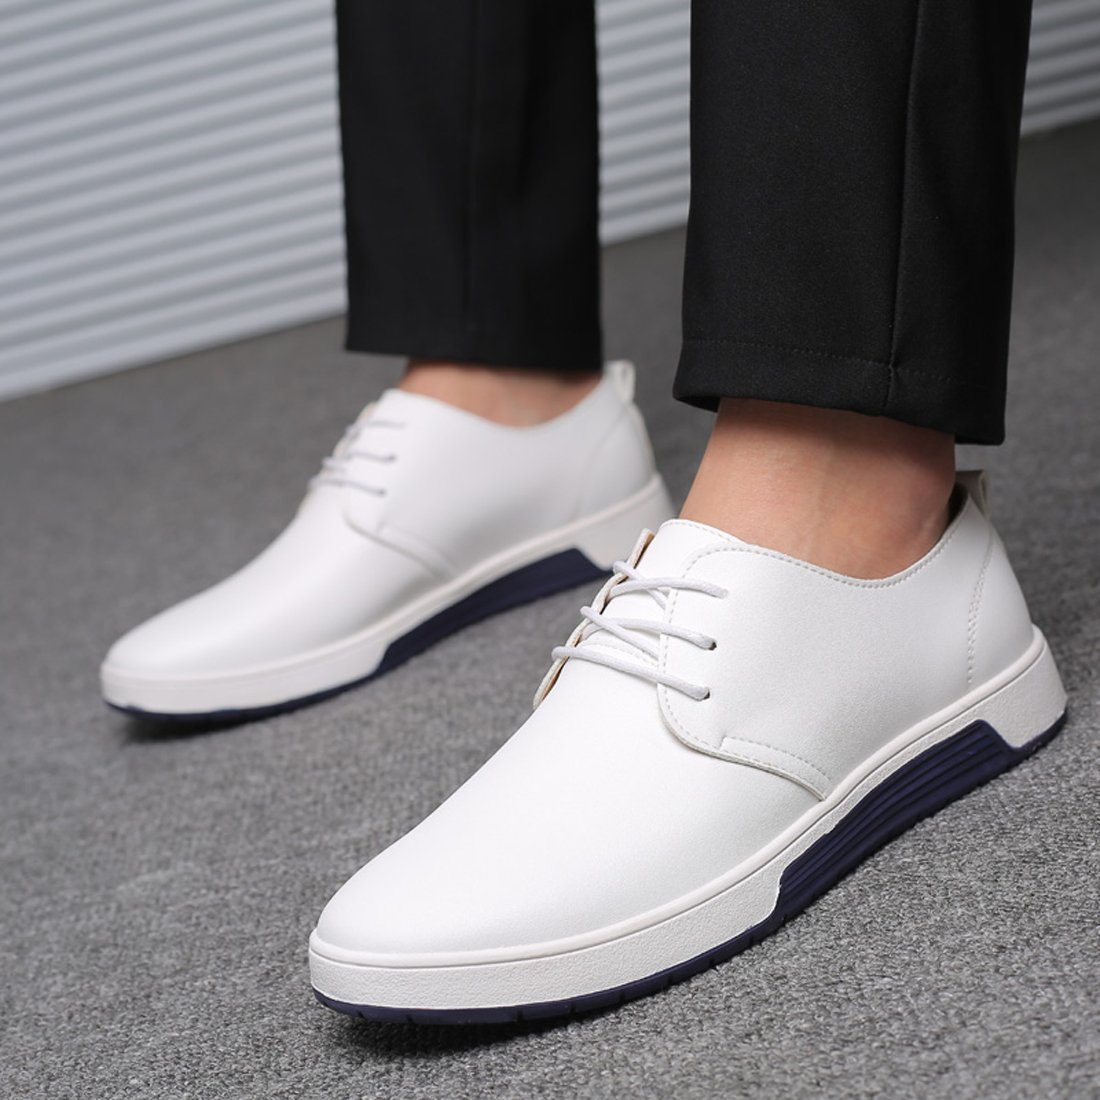 SANTIMON Mens Casual Oxford Shoes Breathable Leather Flat Fashion Sneakers Sandals